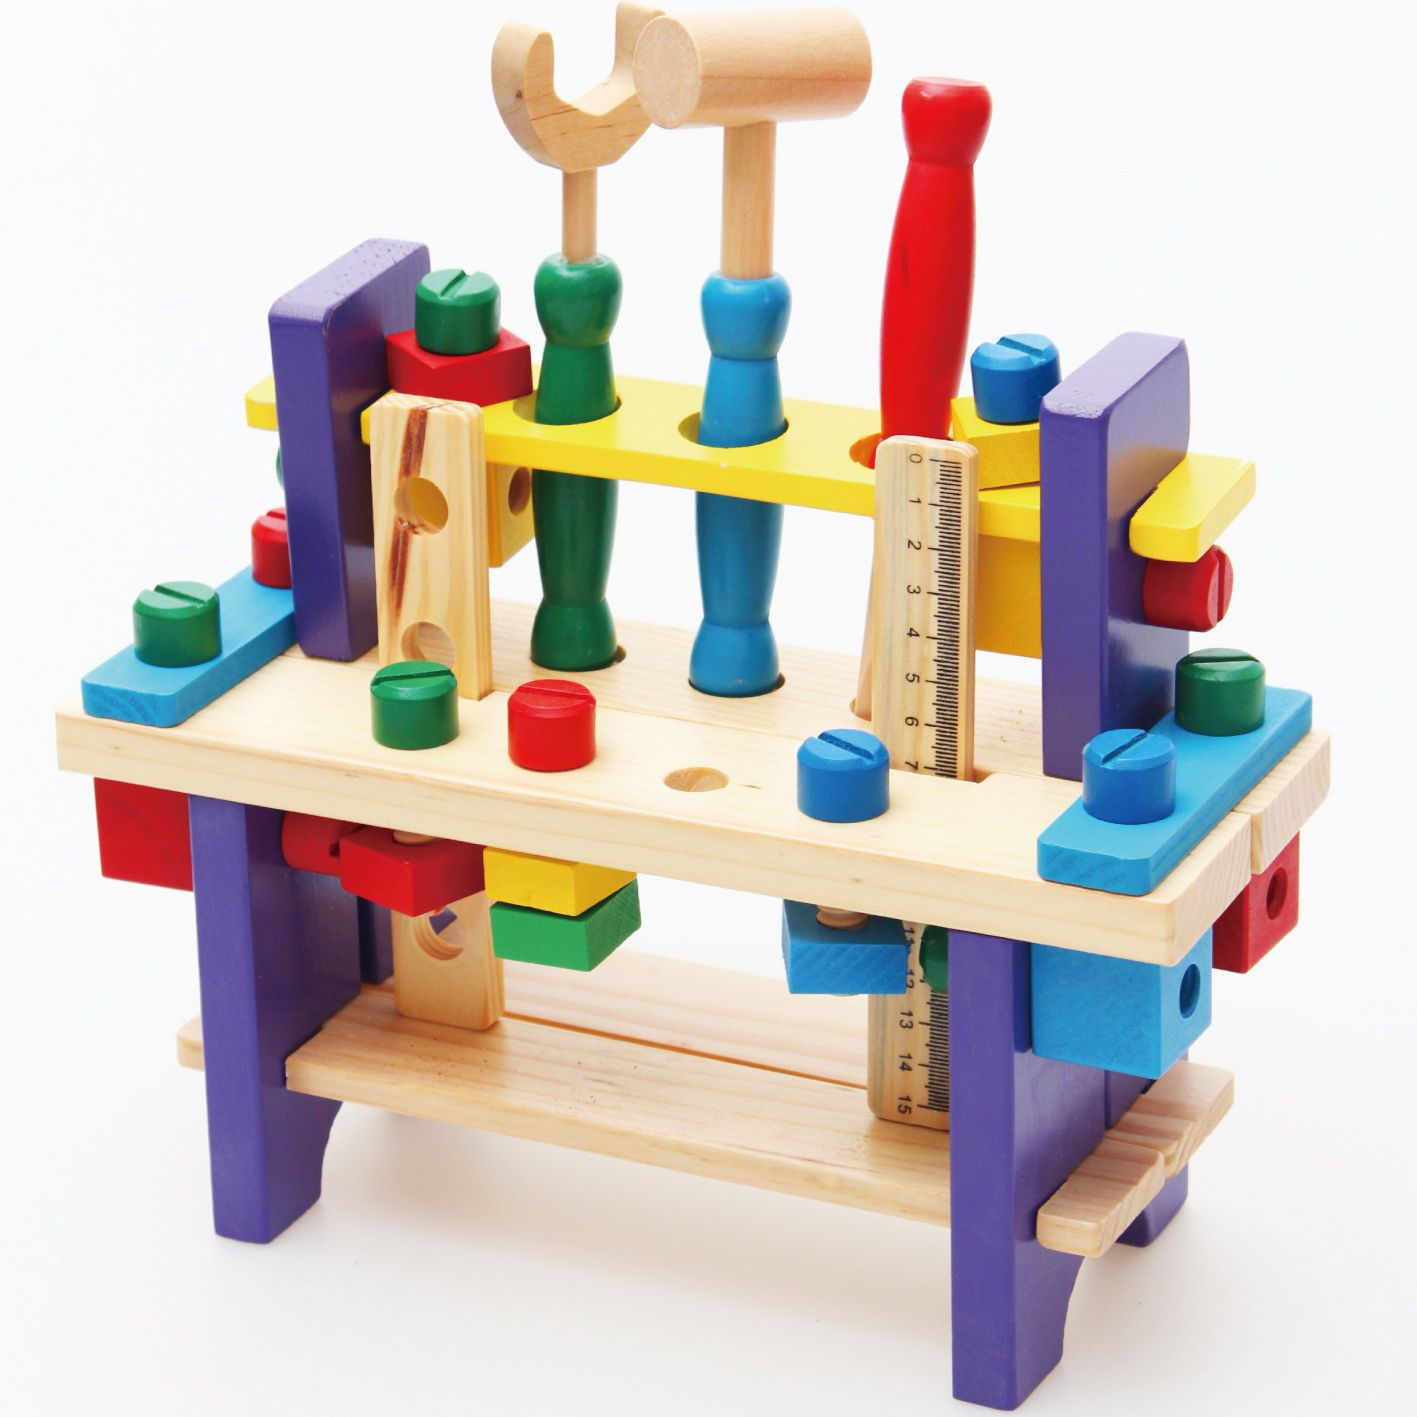 Permalink to Amazing Wooden toys for Boys Images